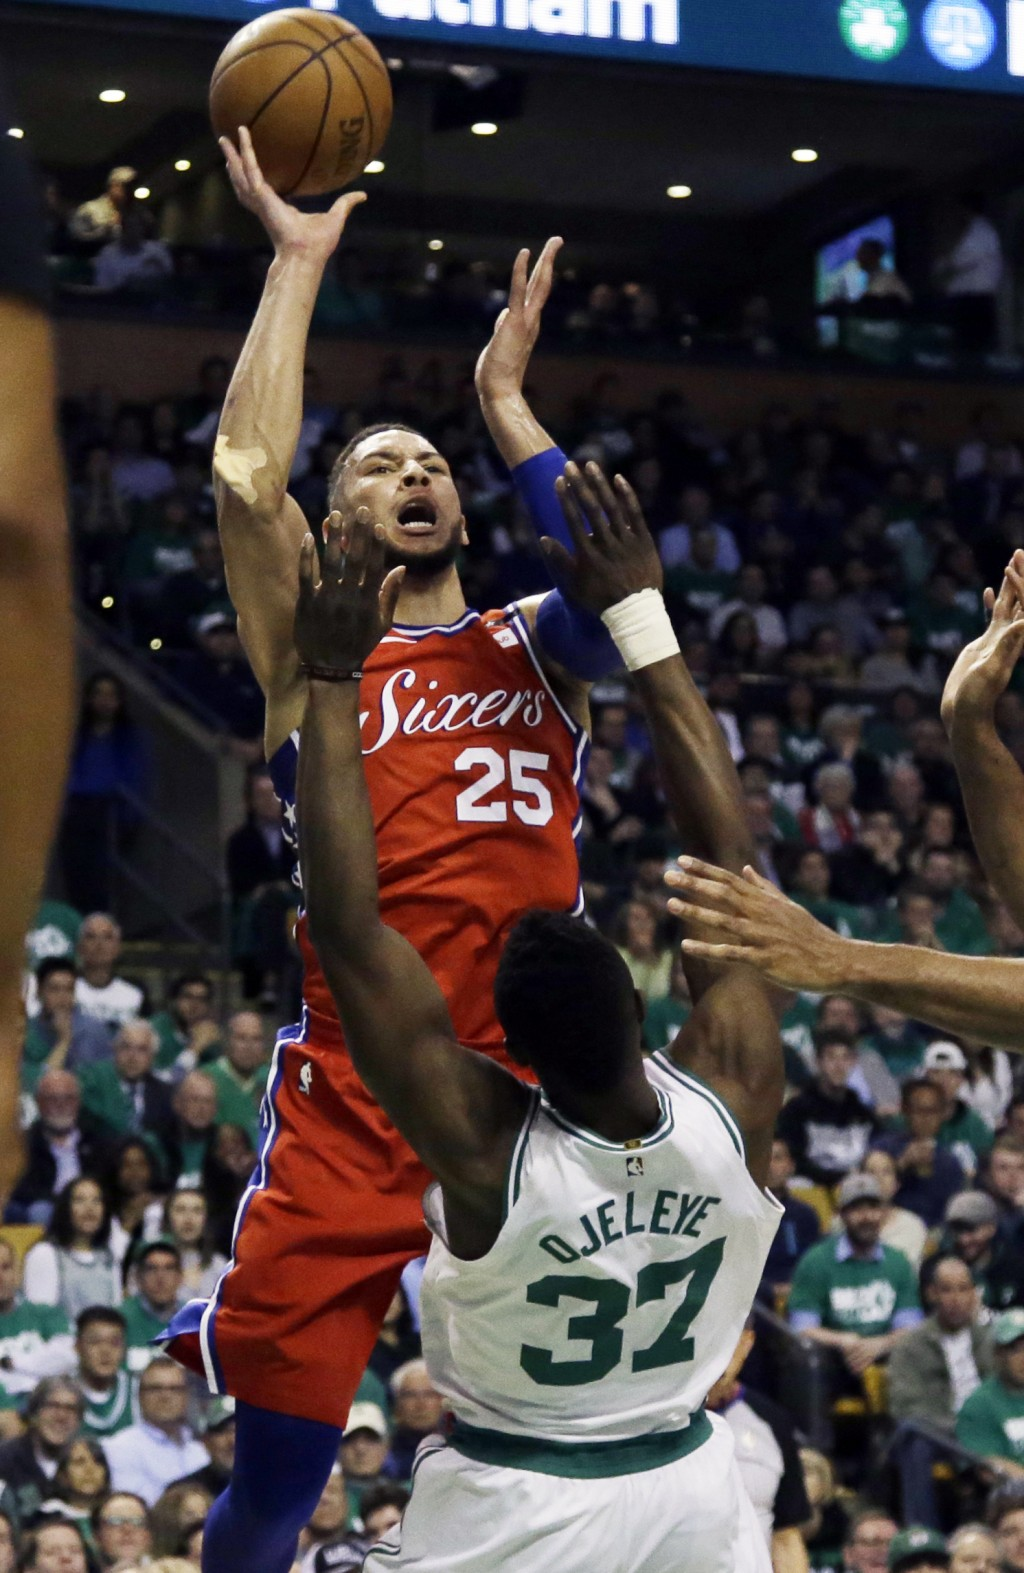 Philadelphia 76ers guard Ben Simmons (25) goes up for a shot and is called for a charge against Boston Celtics forward Semi Ojeleye (37) in the first ...